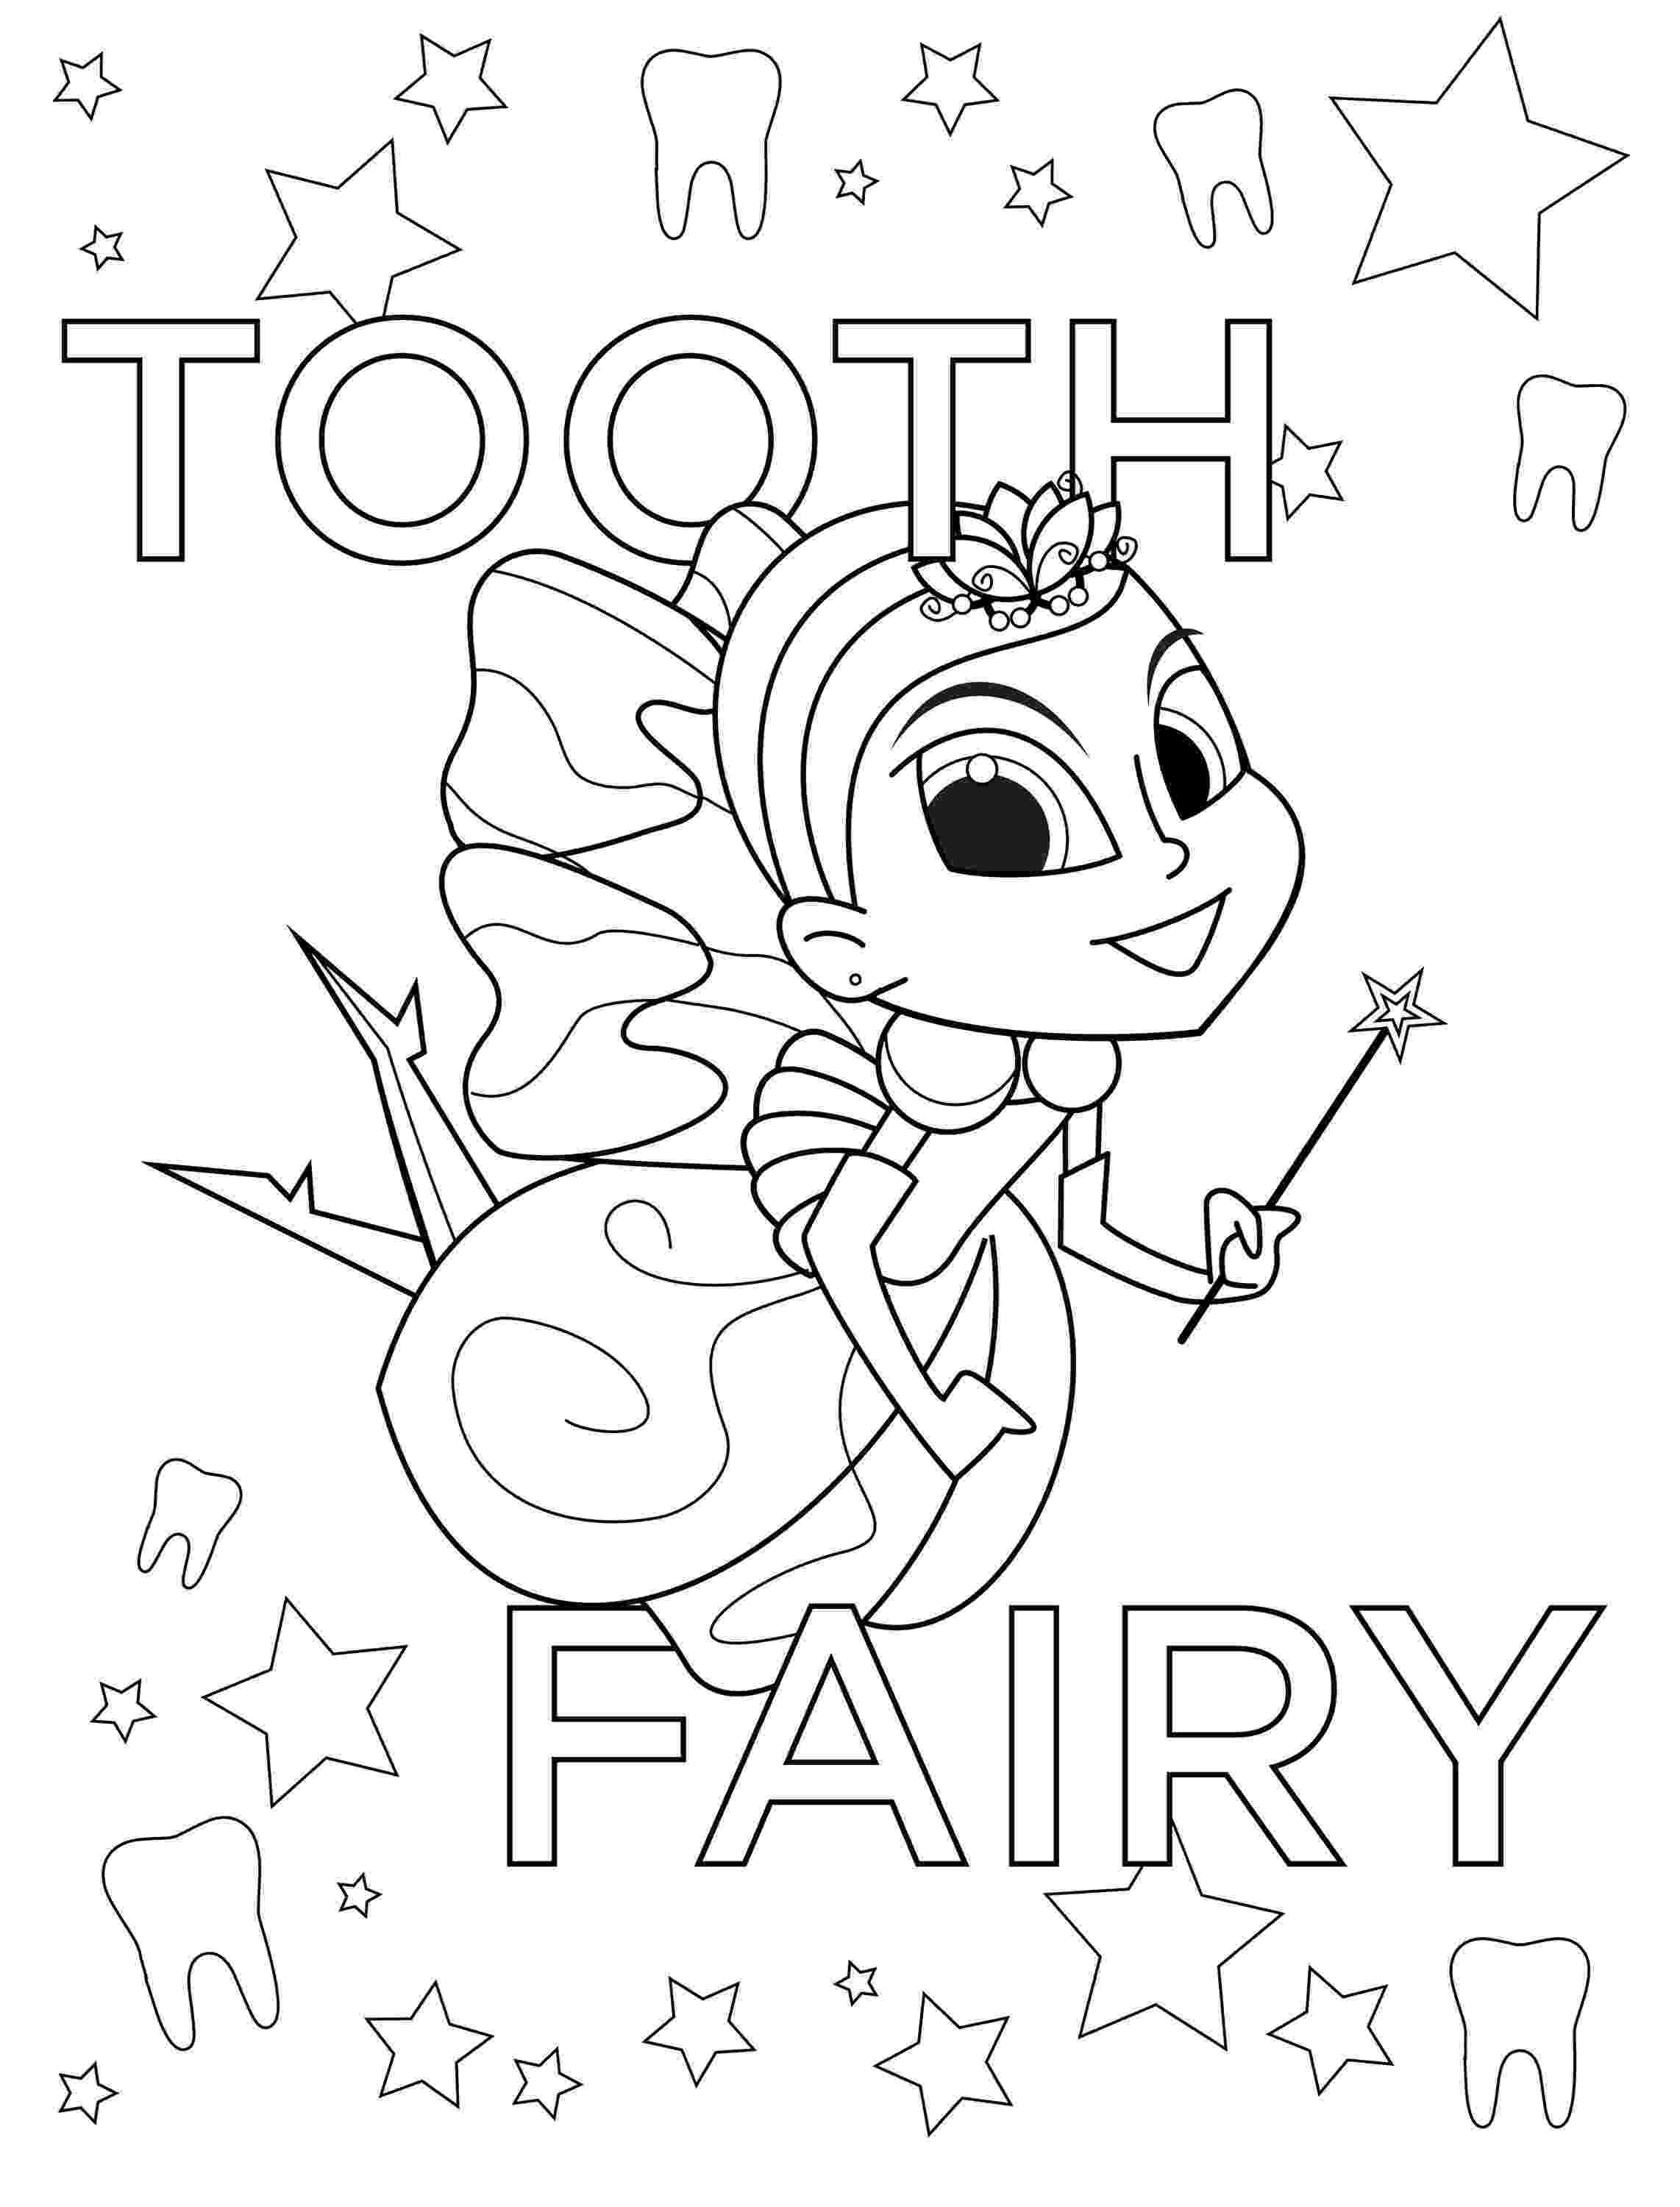 tooth fairy coloring pages tooth fairy day dekamore dental coloring tooth pages fairy